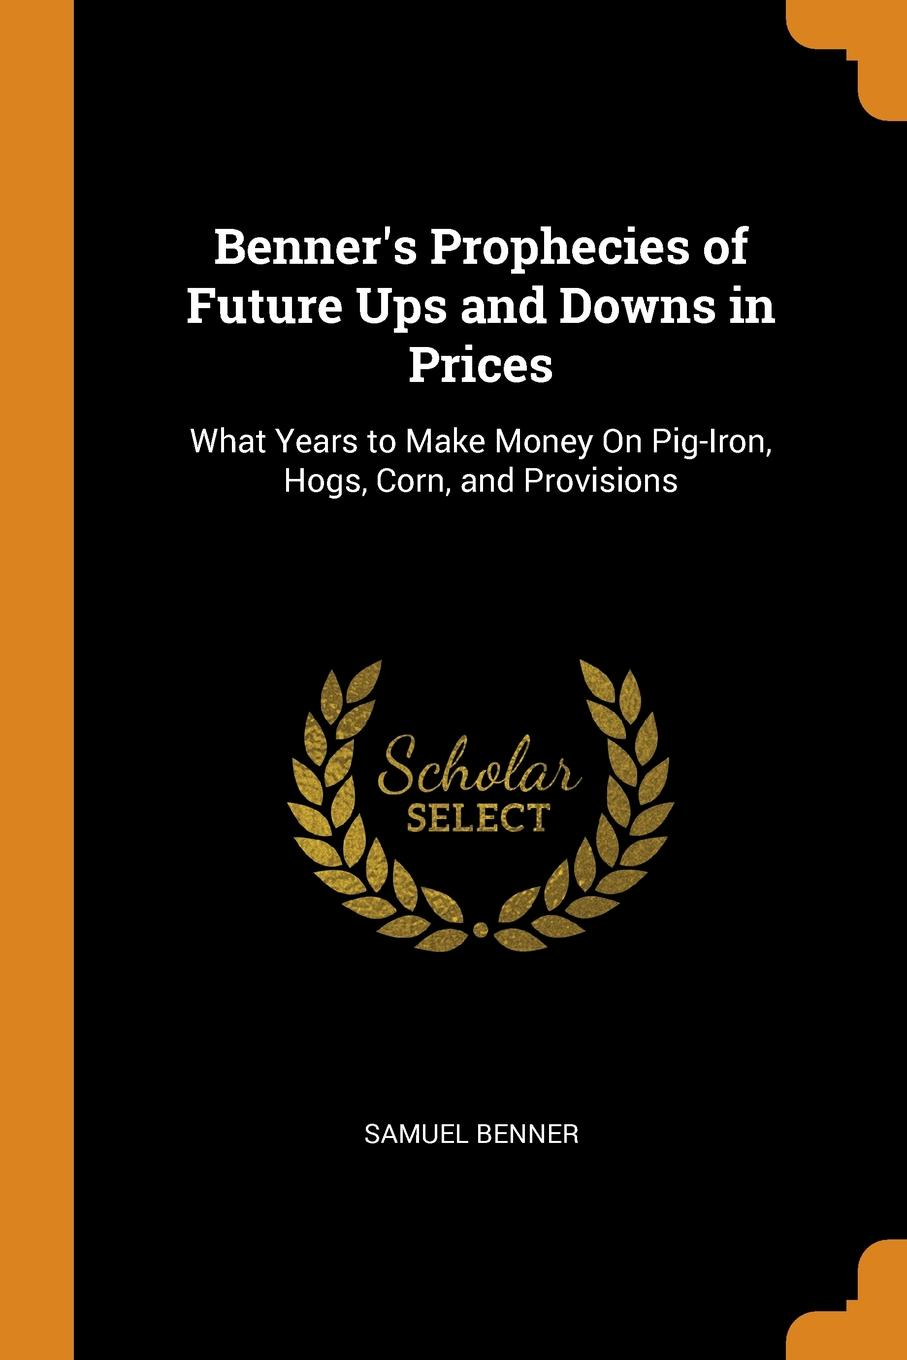 Benner.s Prophecies of Future Ups and Downs in Prices. What Years to Make Money On Pig-Iron, Hogs, Corn, and Provisions This work has been selected by scholars as being culturally important...